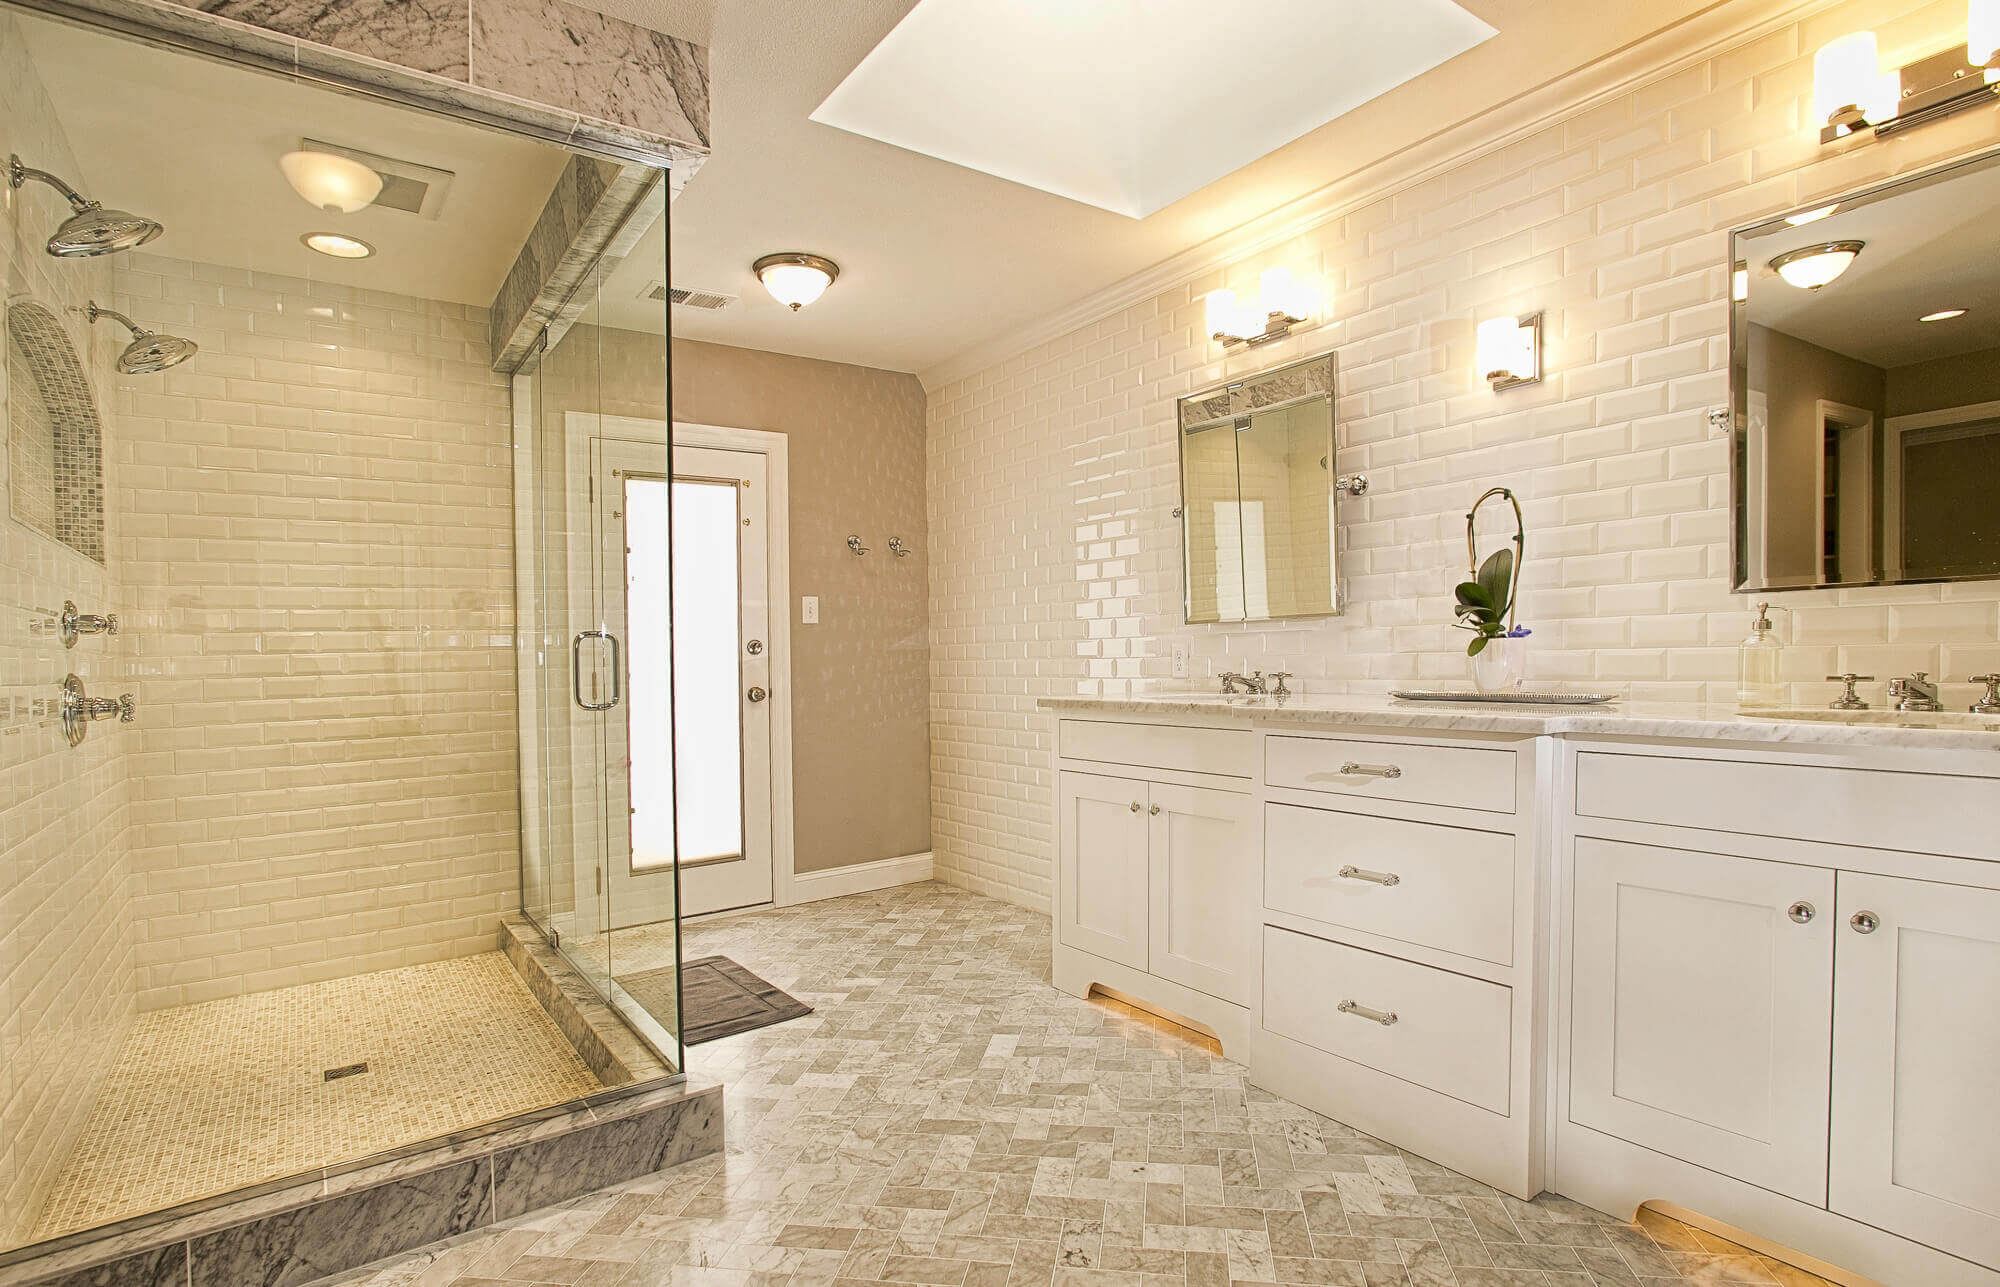 View Our Work - Bathroom Remodeling in Manhattan Kansas